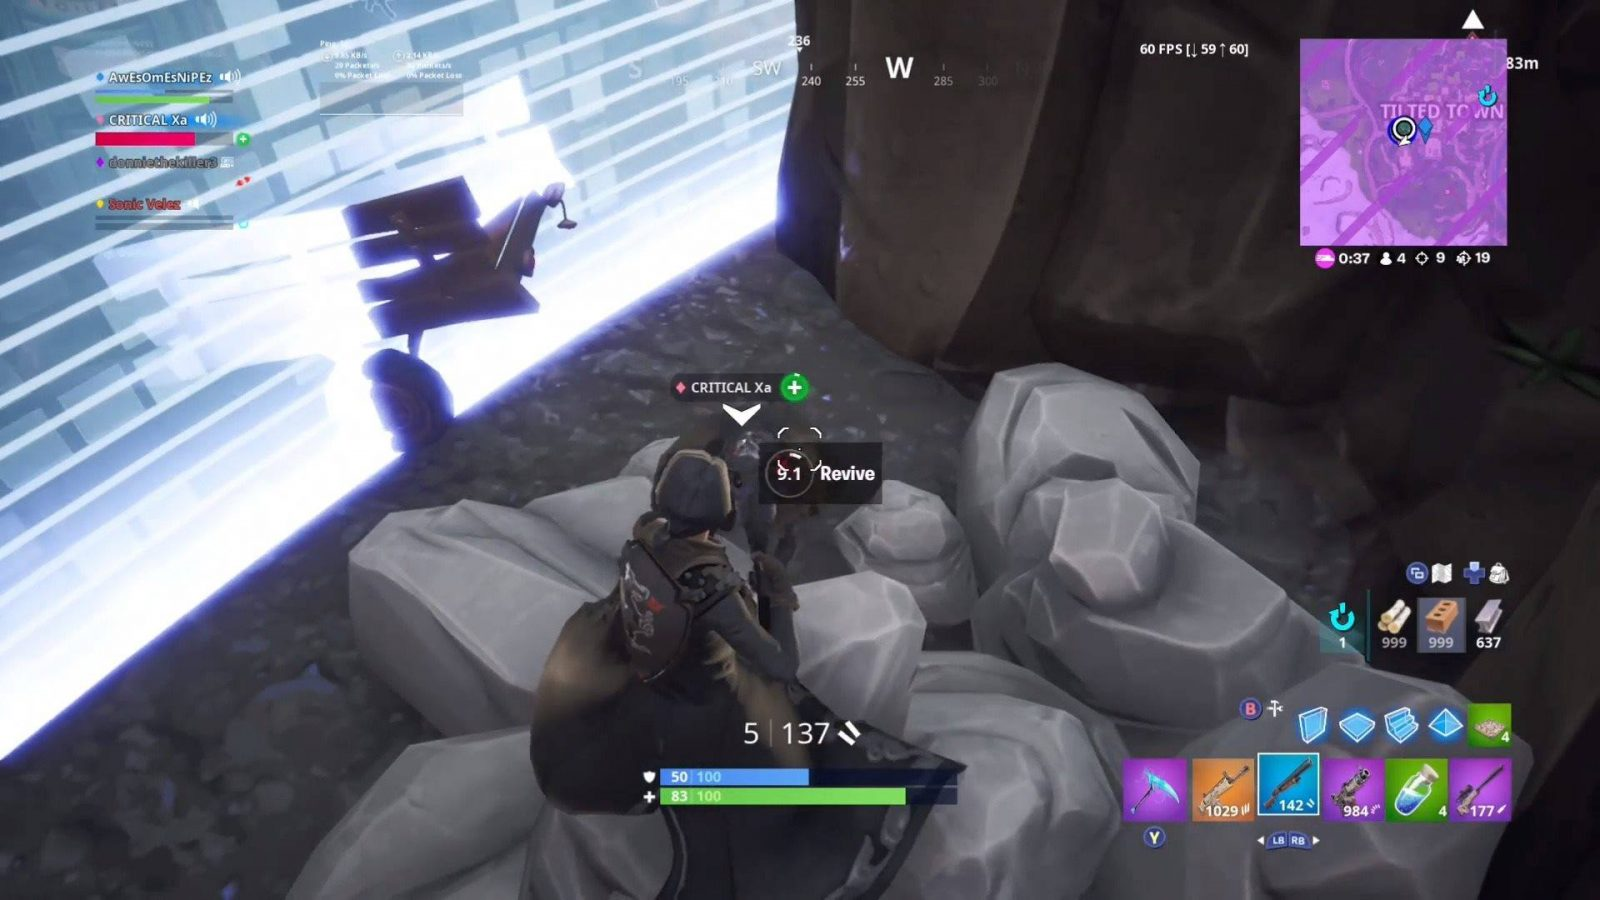 Clutch Victory Royale At Tilted Town